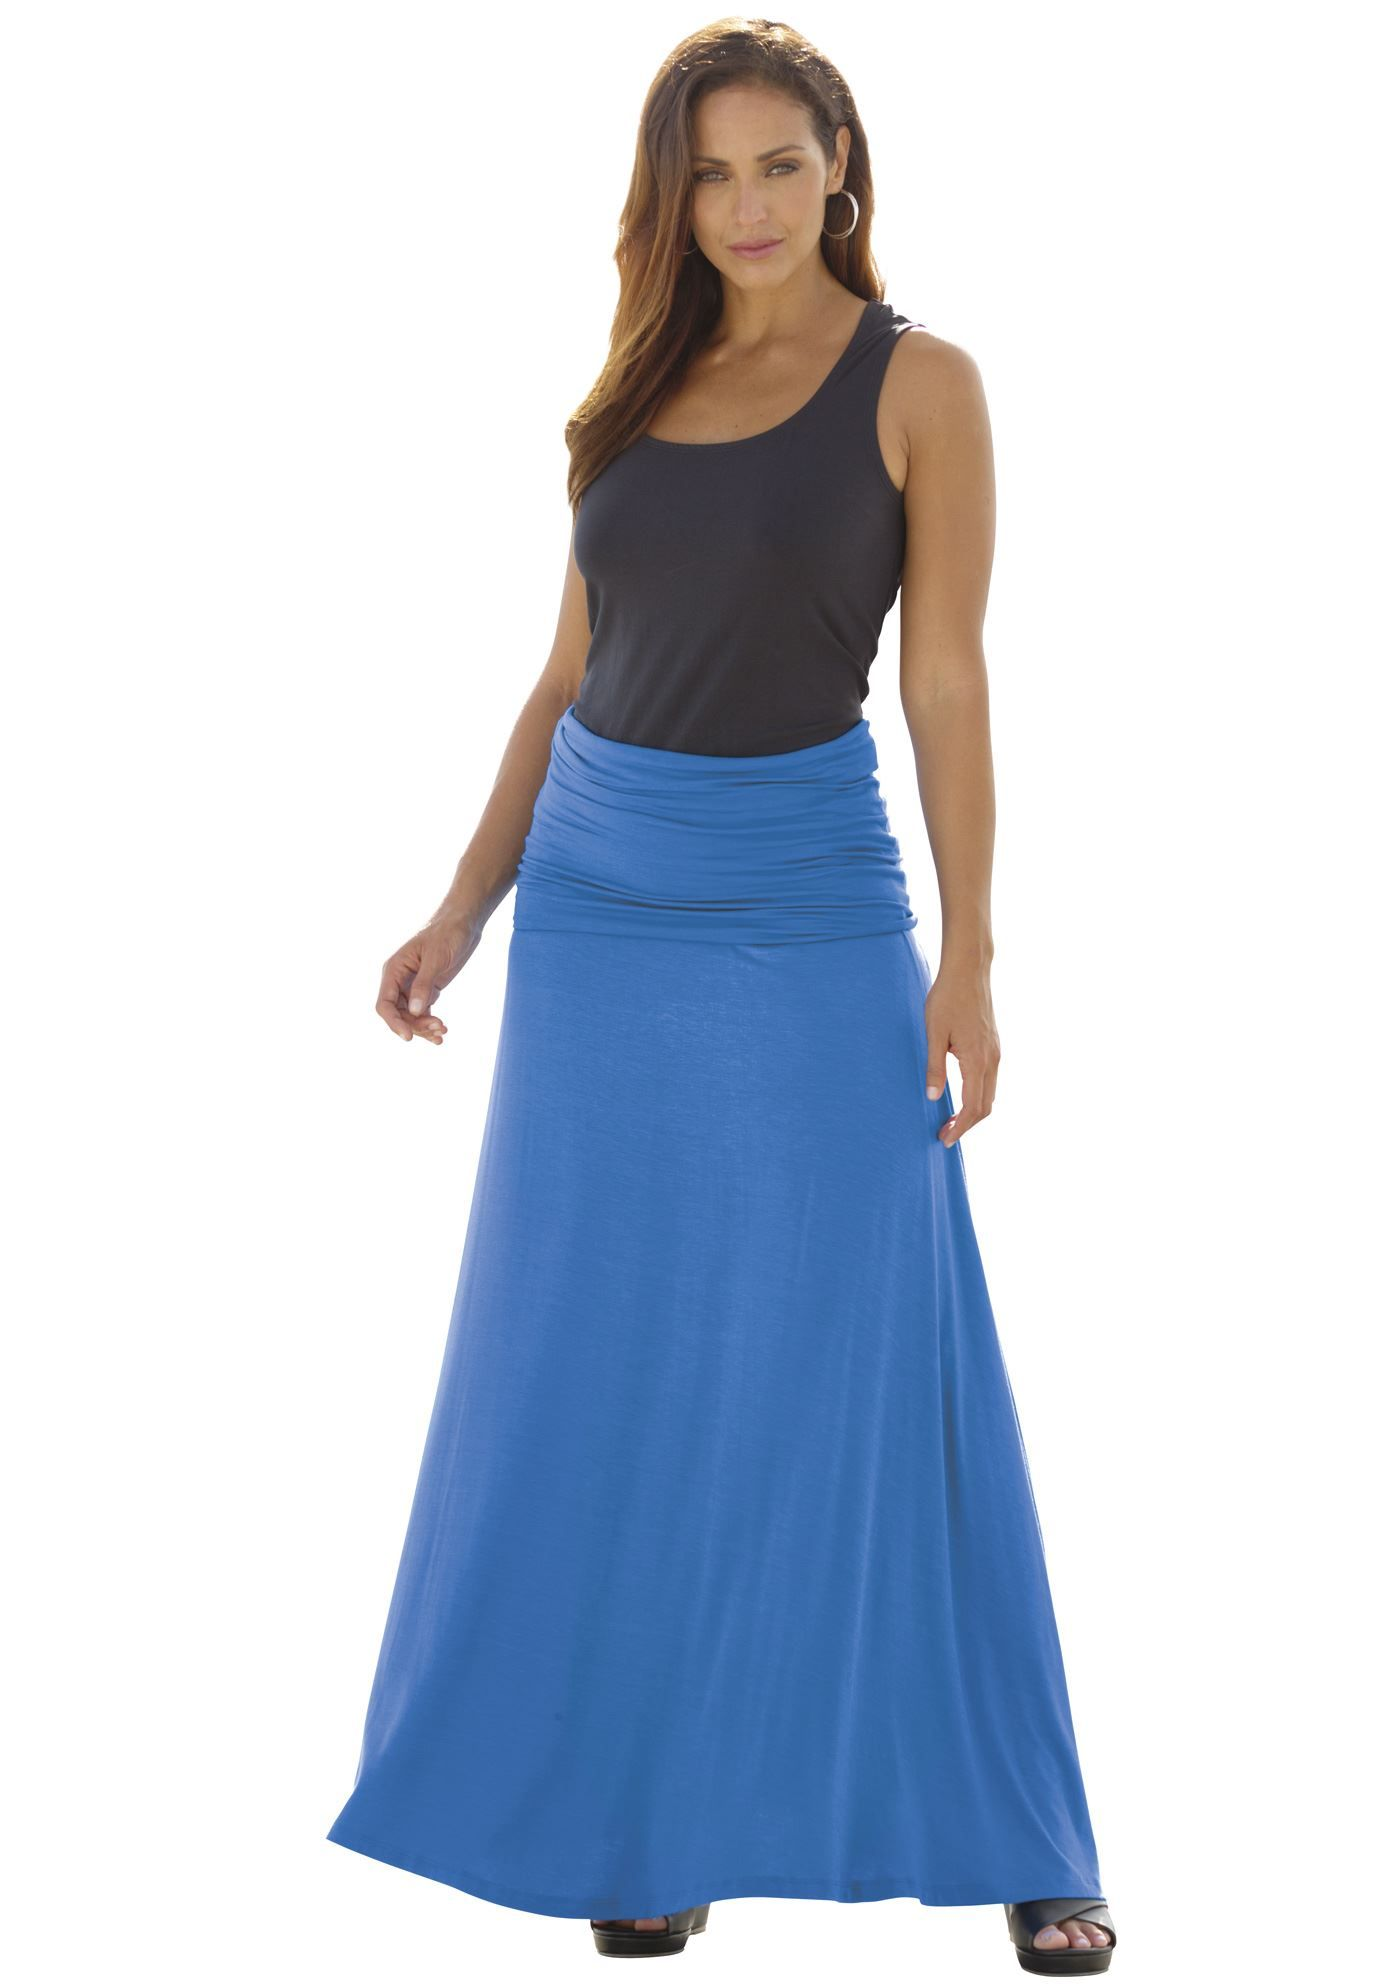 Convertible dress can be worn as a maxi a midi or as a skirt with